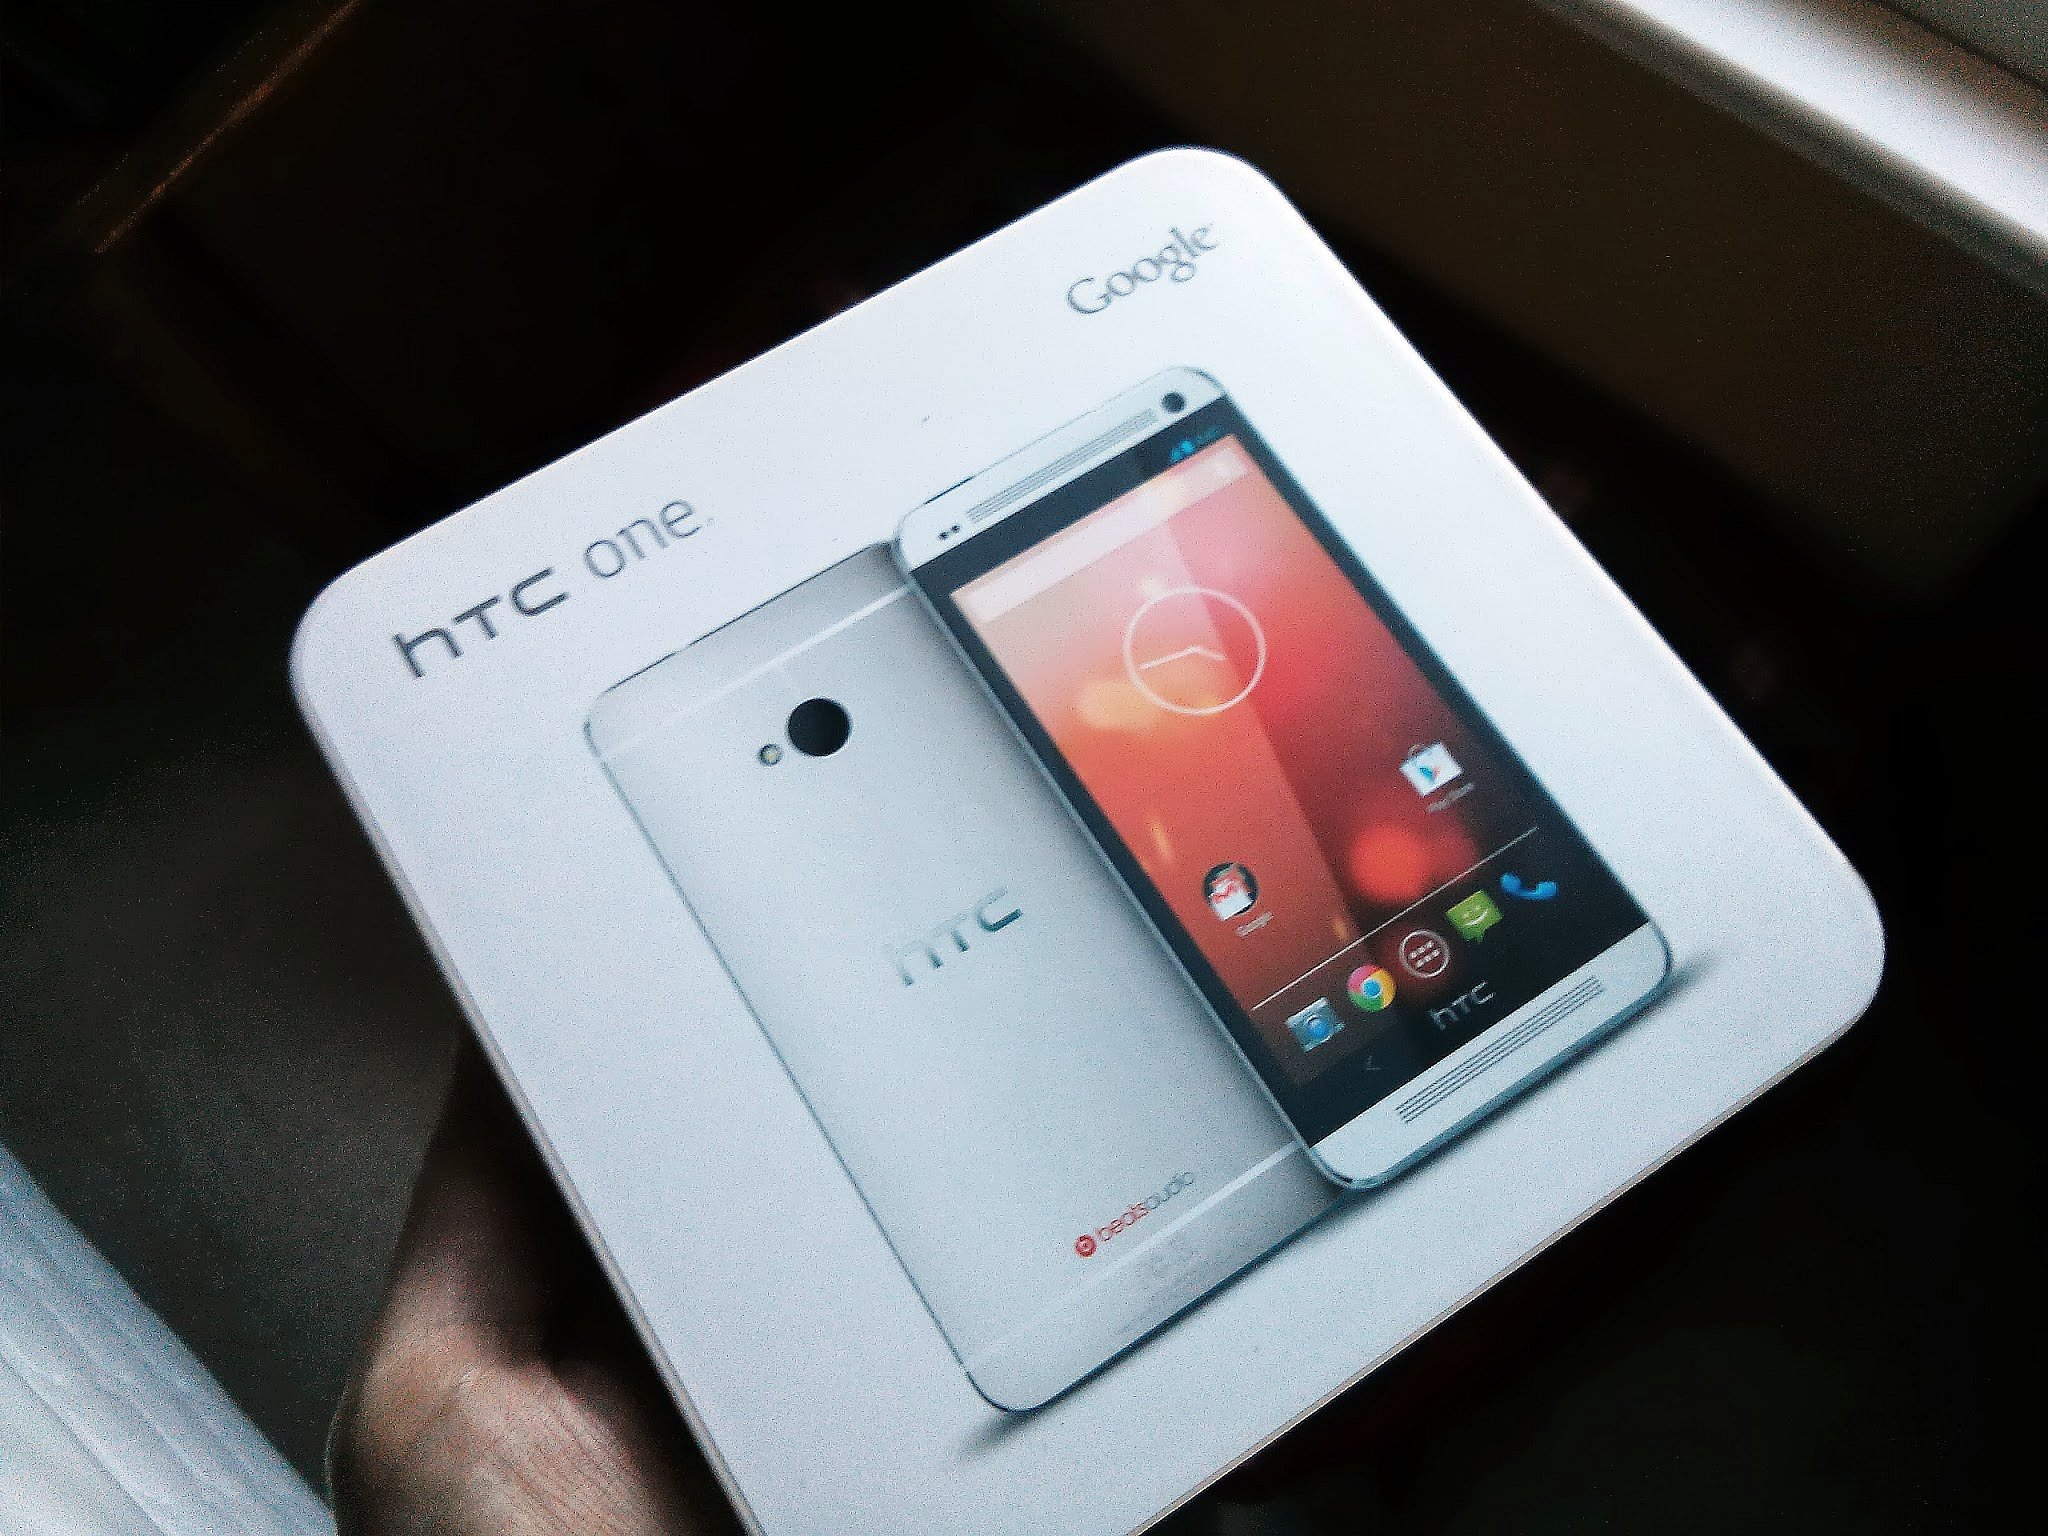 HTC One Google Edition box